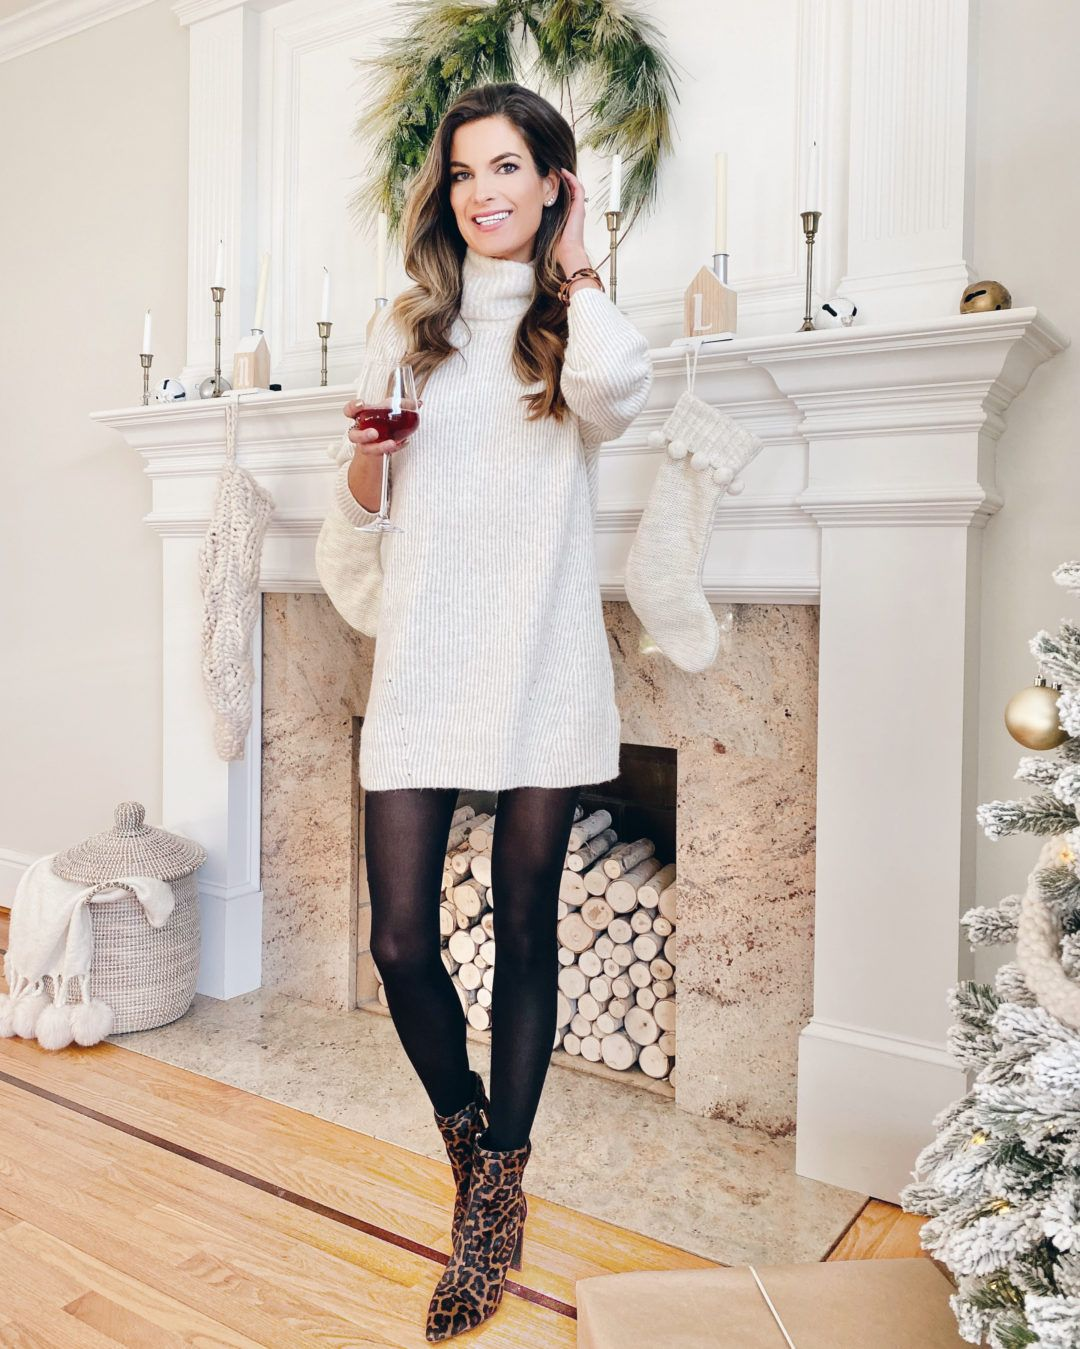 New Year's Eve House Party Outfit Ideas | New years eve ...